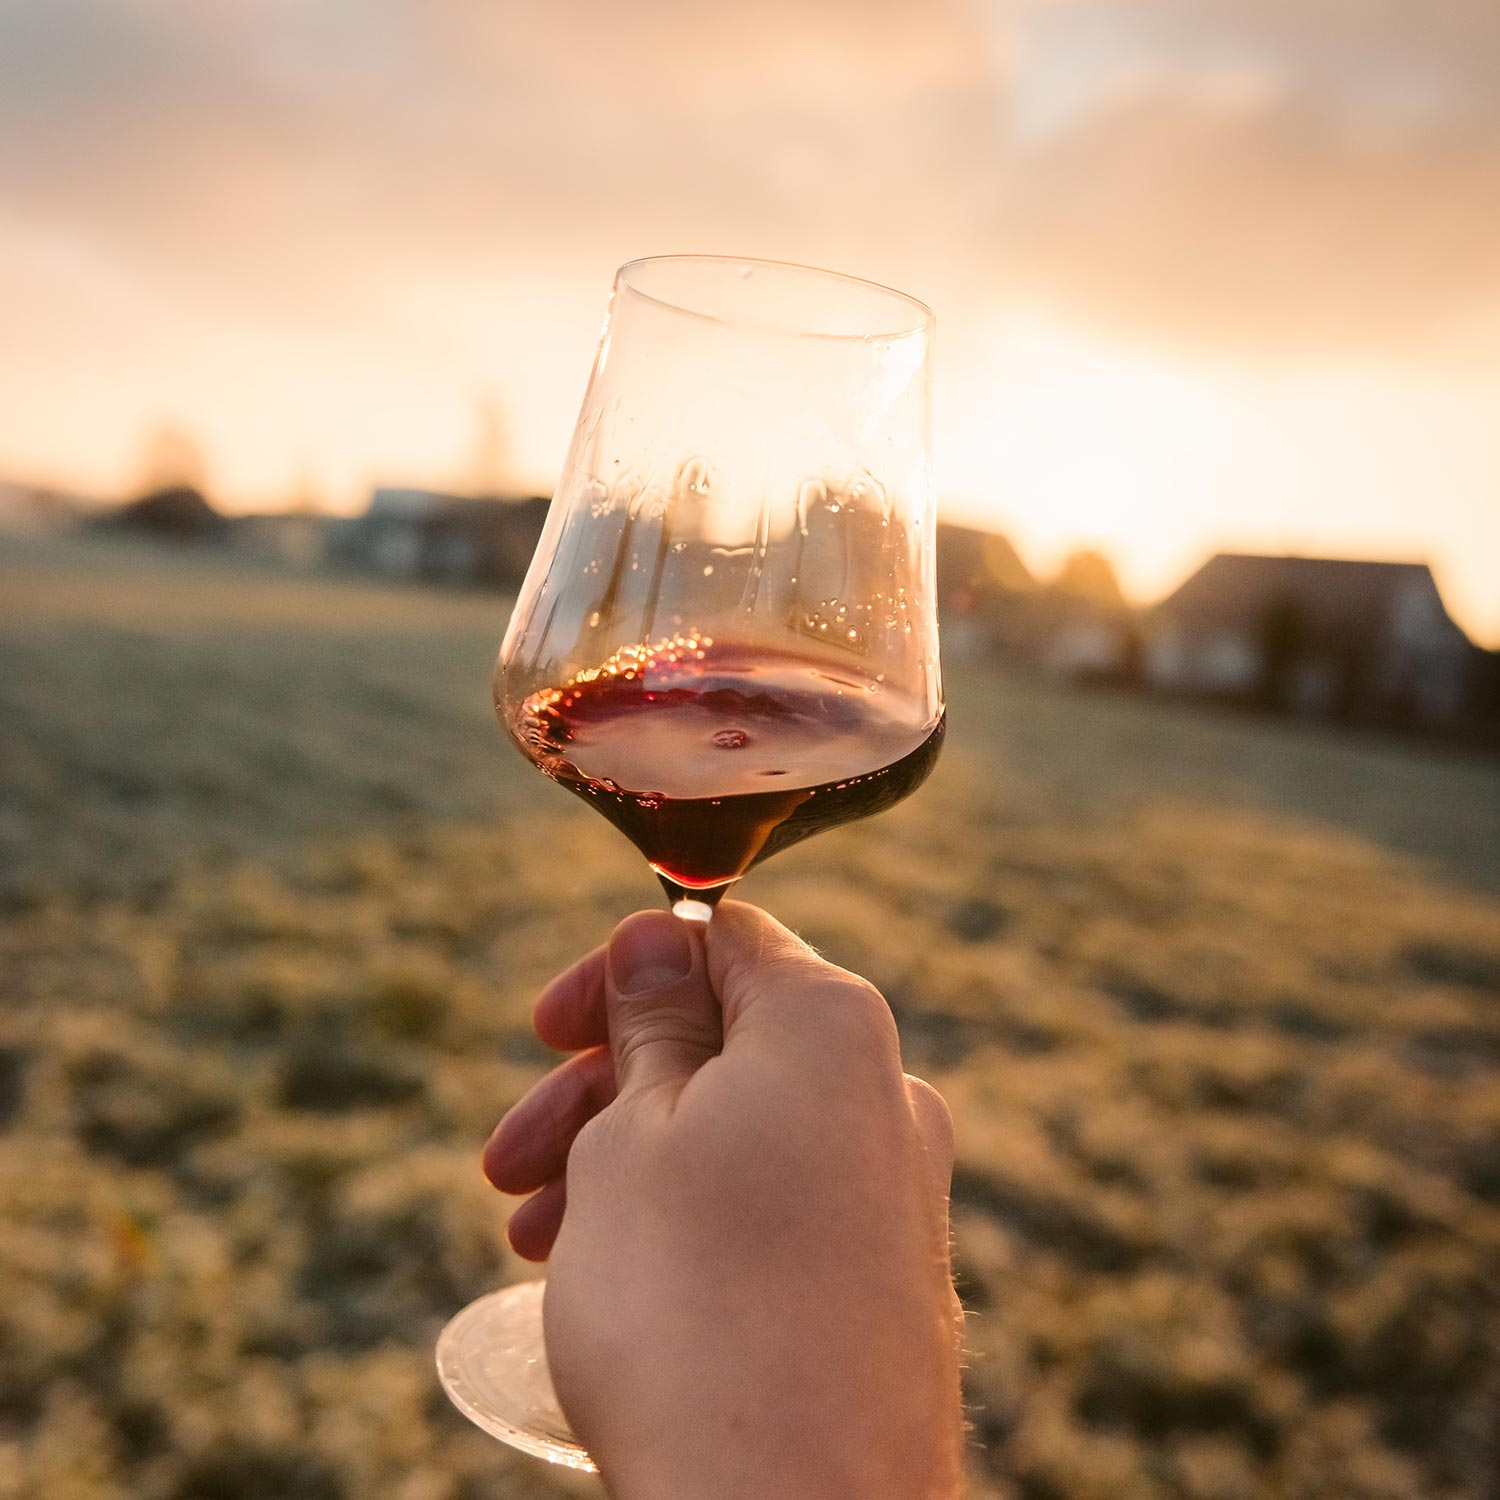 glass of wine held up against the sun